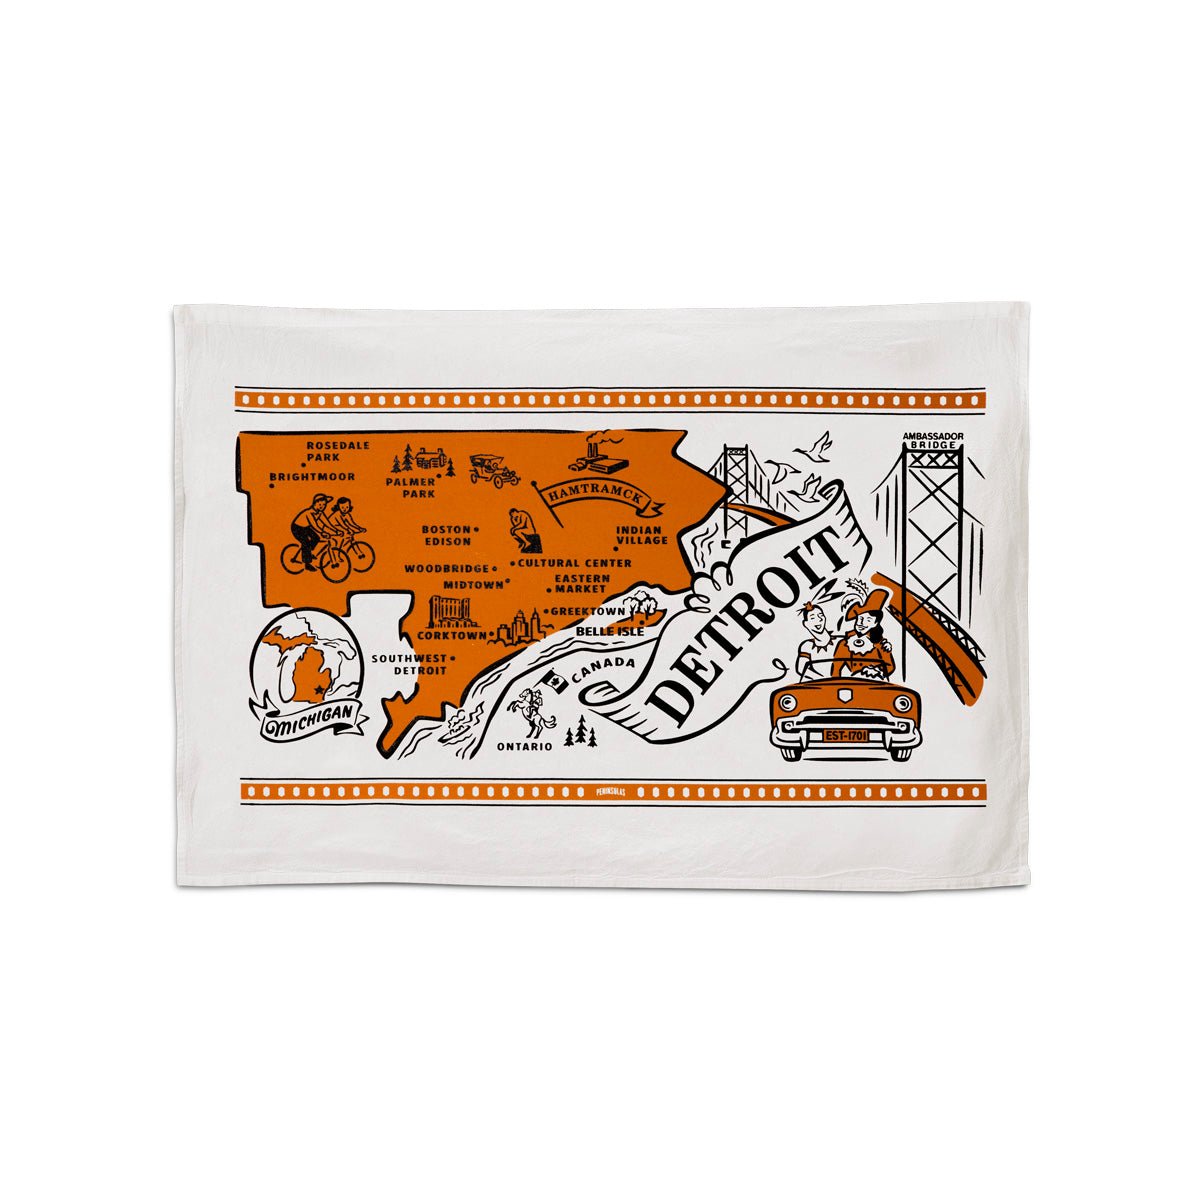 "This 24""x16"" 100% cotton flour sack towel has images and landmarks from Detroit silk screened on it."